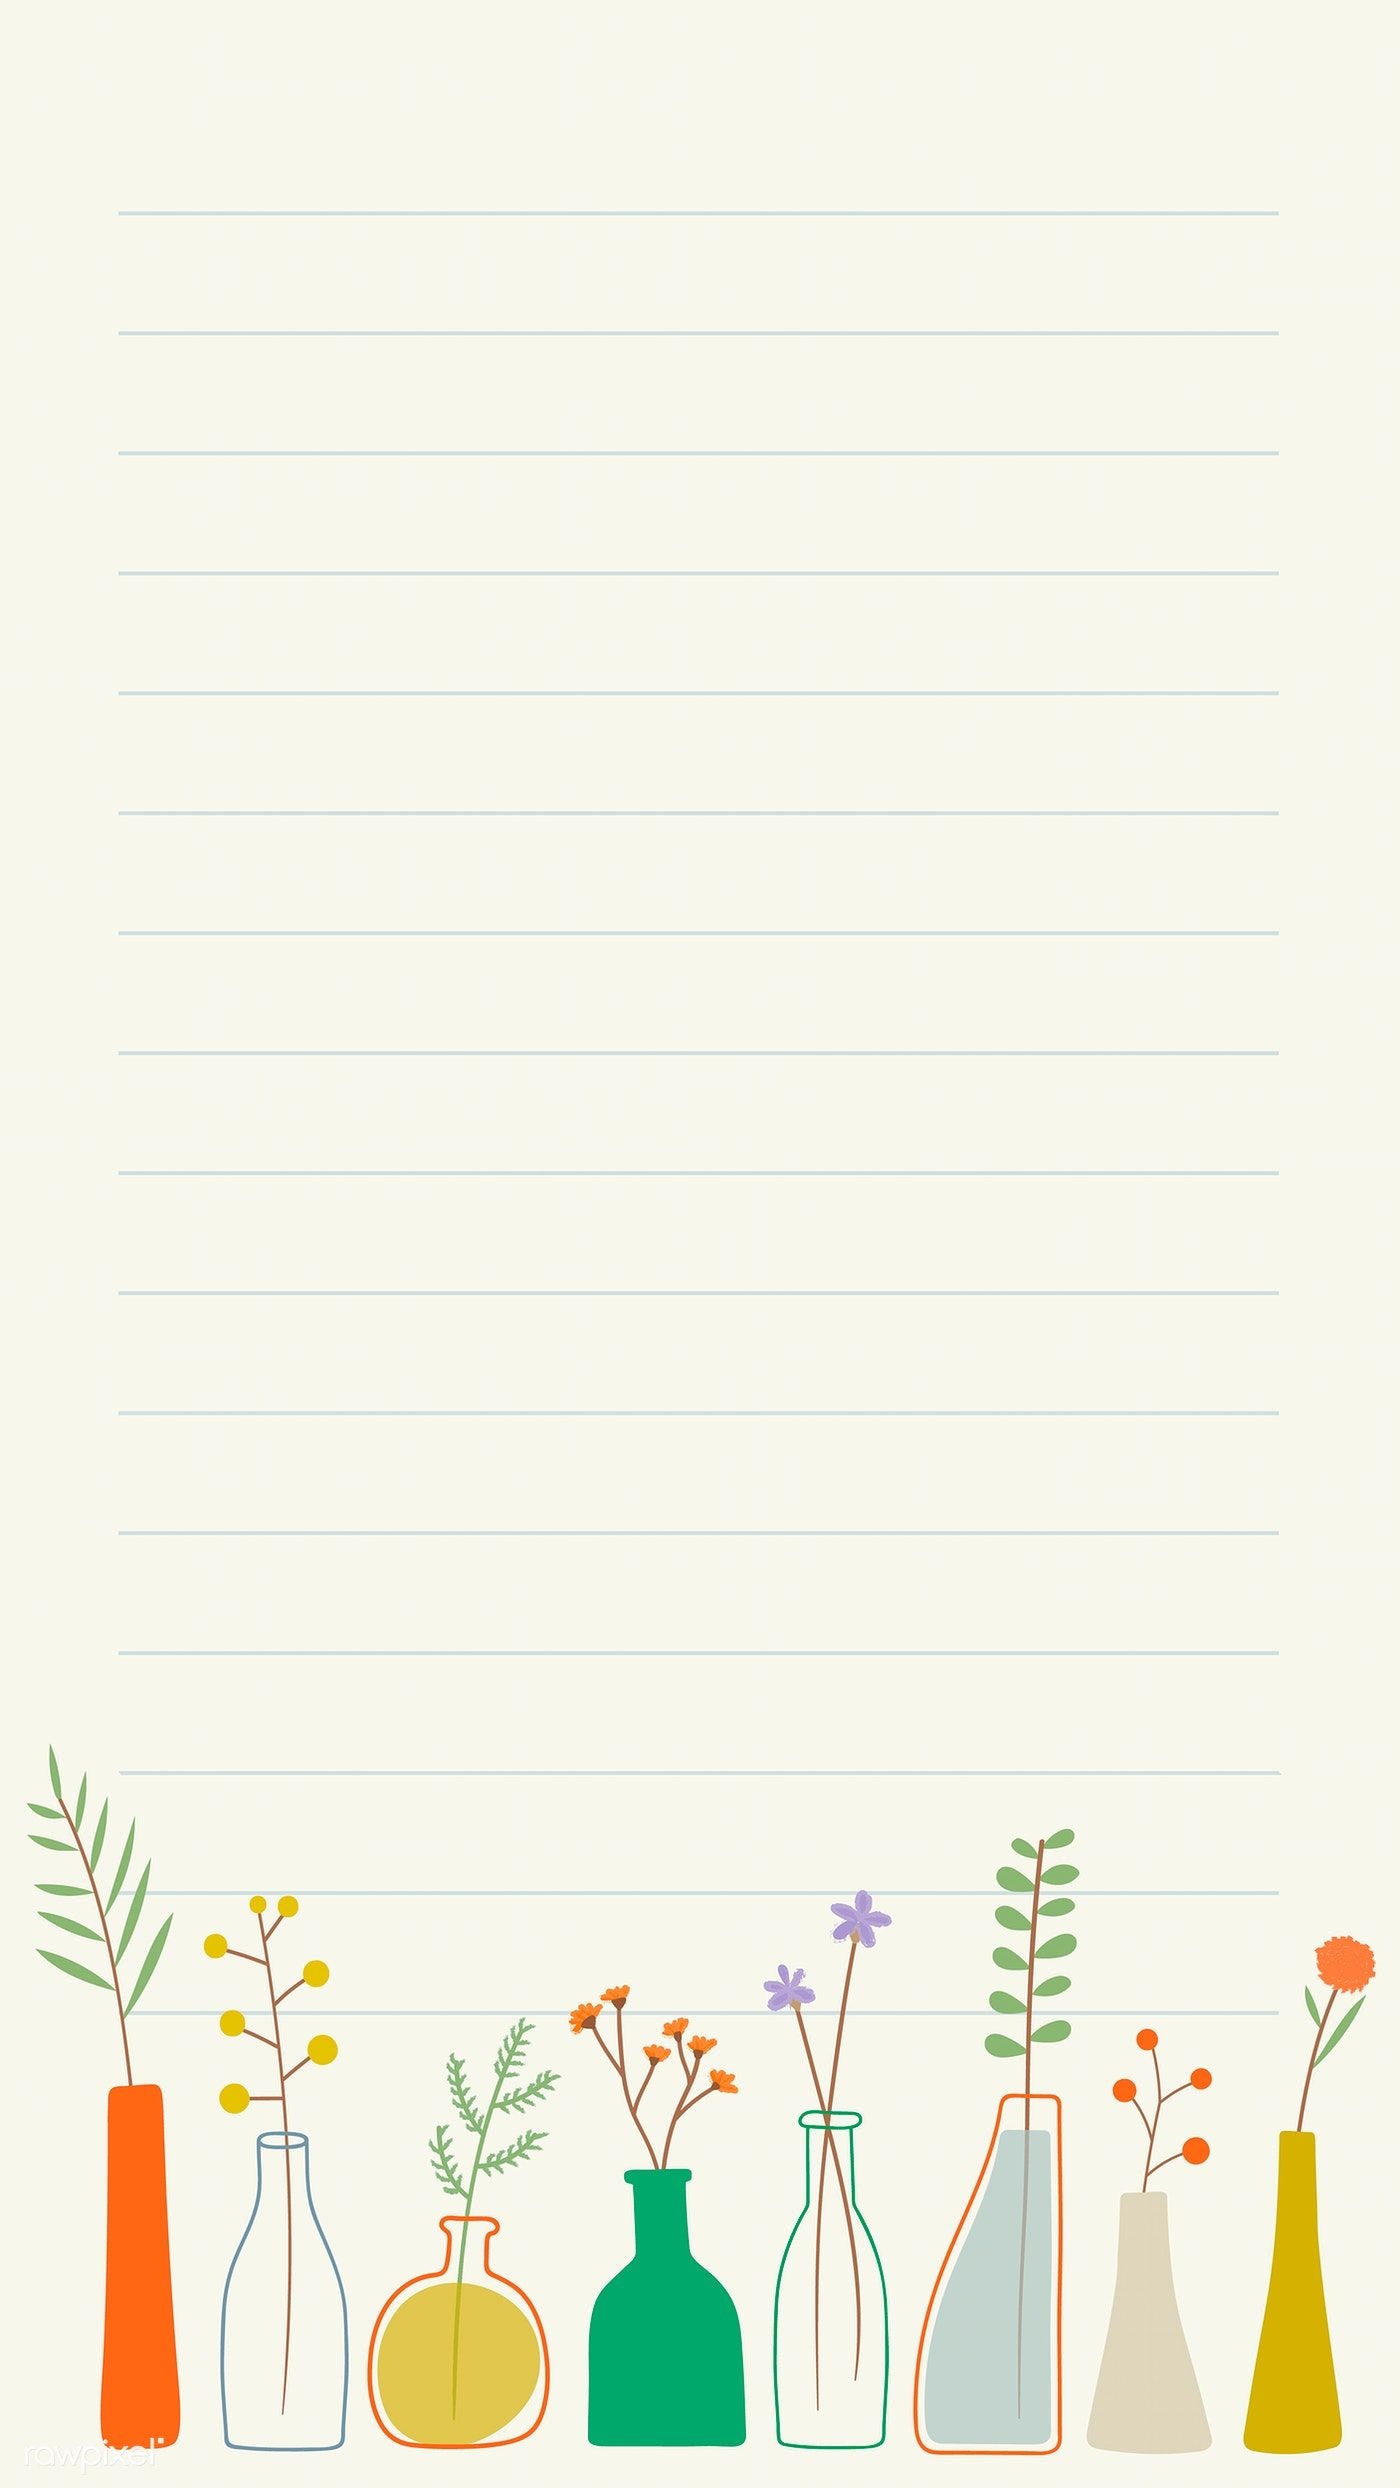 Download premium vector of Doodle flowers in vases note paper template mobile phone wallpaper vector by marinemynt about note cartoon, flower vase decoration, background, blank, and blue 1222901